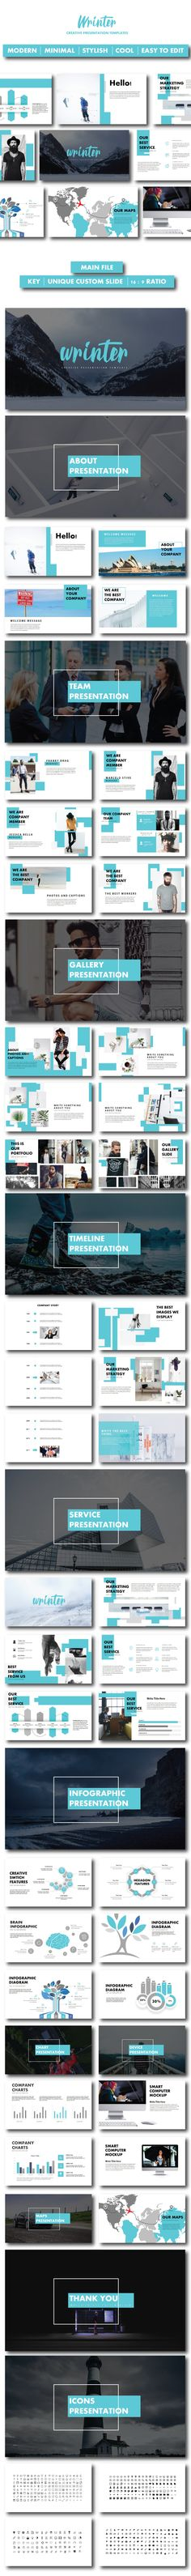 Wrinter Creative PowerPoint Templates Creative Presentation by CreatorTemplate. Powerpoint Free, Professional Powerpoint Templates, Creative Powerpoint Templates, Typography Design, Branding Design, Entrepreneur, Art Design, Graphic Design, Presentation Templates